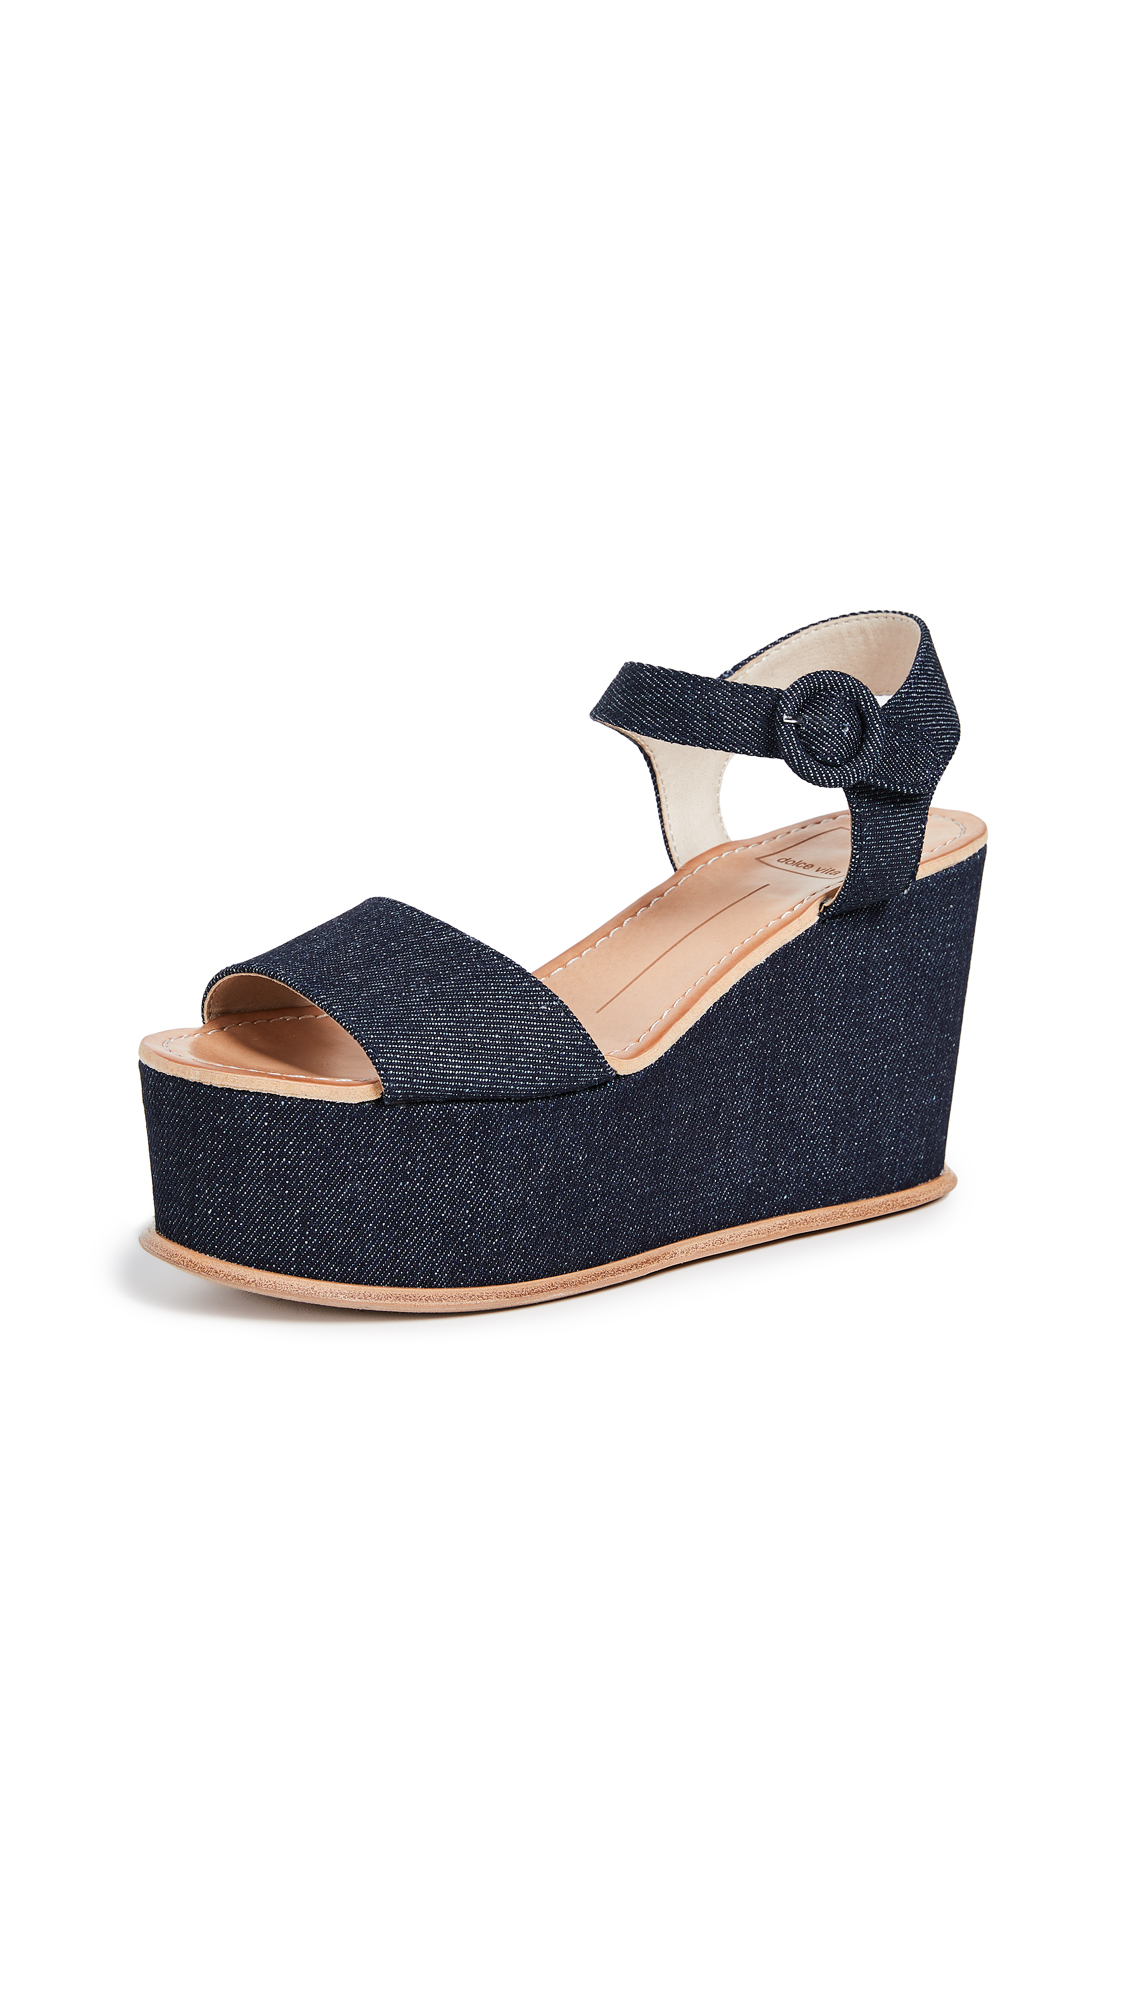 Dolce Vita Datiah Platform Sandals - Denim